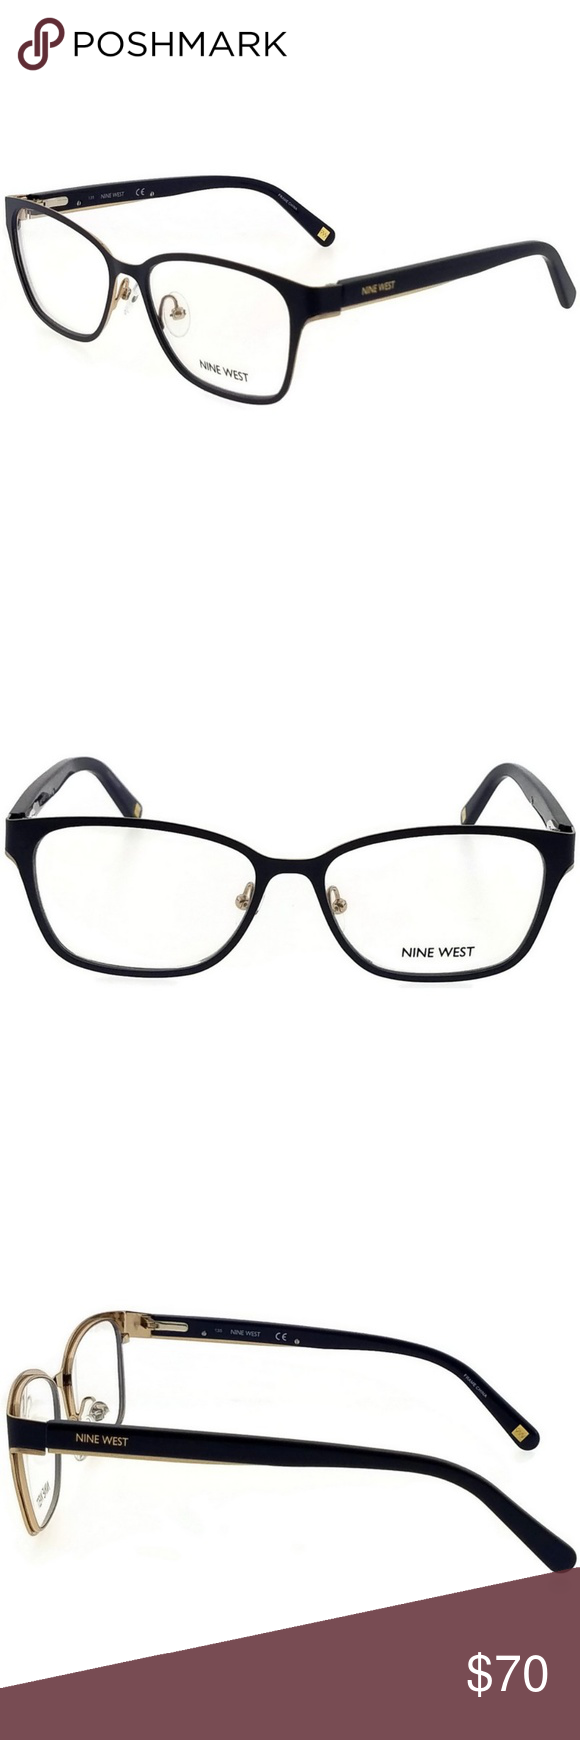 Nine west nw1070-434-52 eyeglasses nwt (With images) | Eyeglasses, Glasses  accessories, Tom ford eyewear